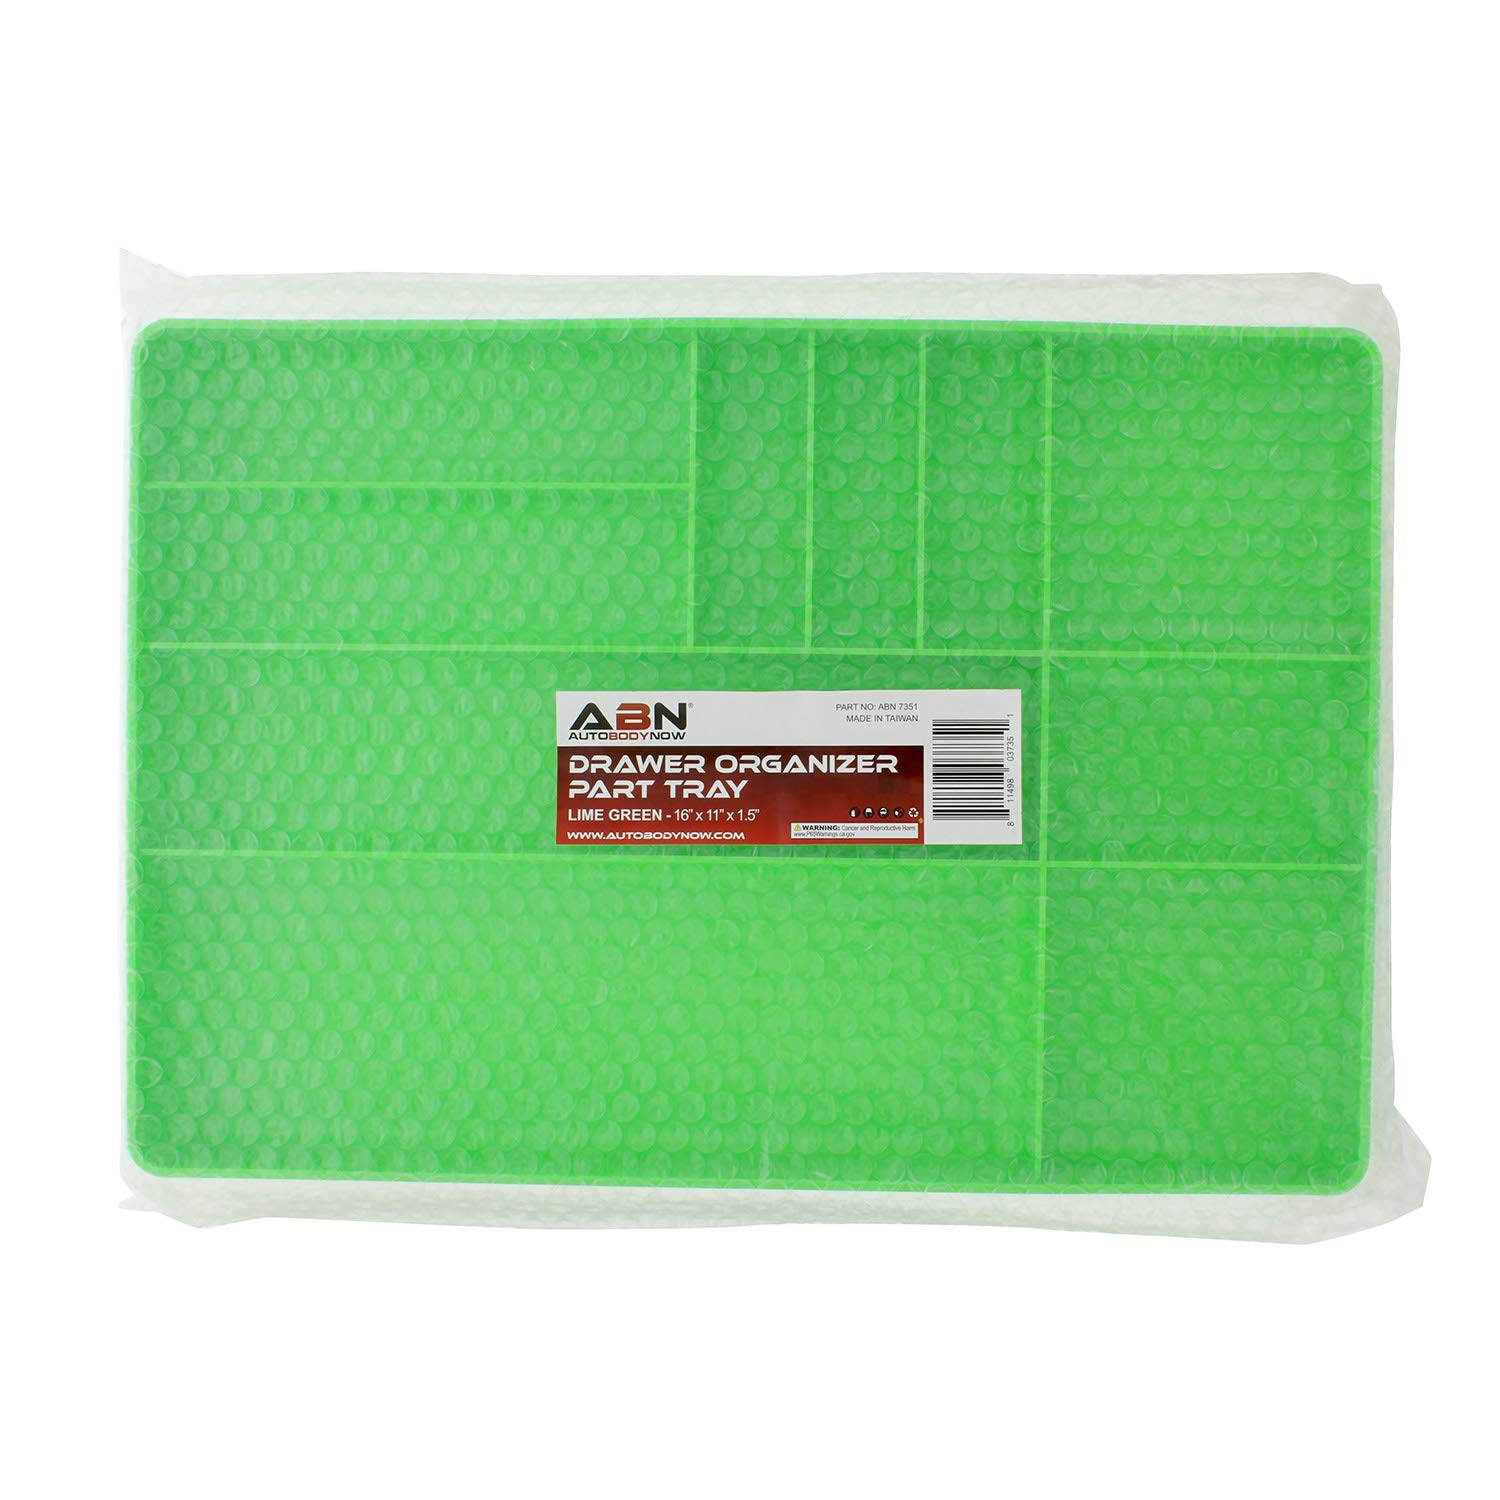 ABN | Toolbox Drawer Organizer Tool Organizer Tool Tray - Tool Drawer Organizer Sorting Tray, 16x11x1.5'' Inch in Green by ABN (Image #6)